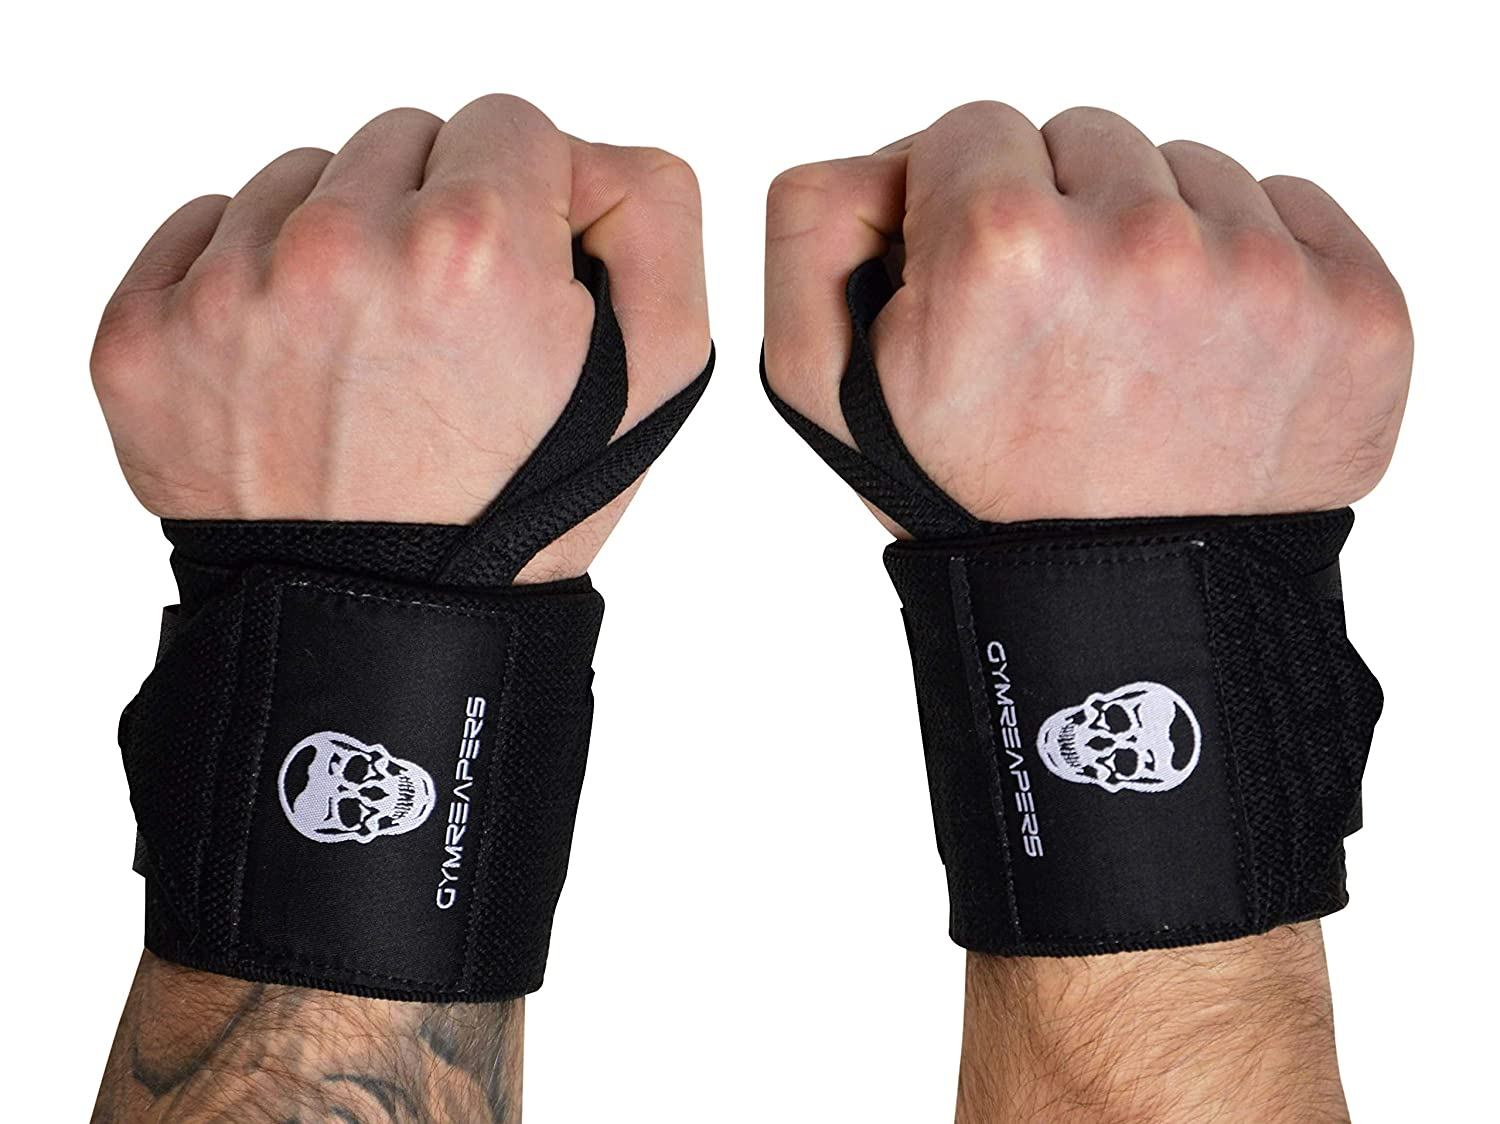 Black 18\ Weightlifting Wrist Wraps (Competition Grade)  18  Professional Quality Wrist Support with Heavy Duty Thumb Loop  Best Wrap for Powerlifting, Strength Training, Bodybuilding